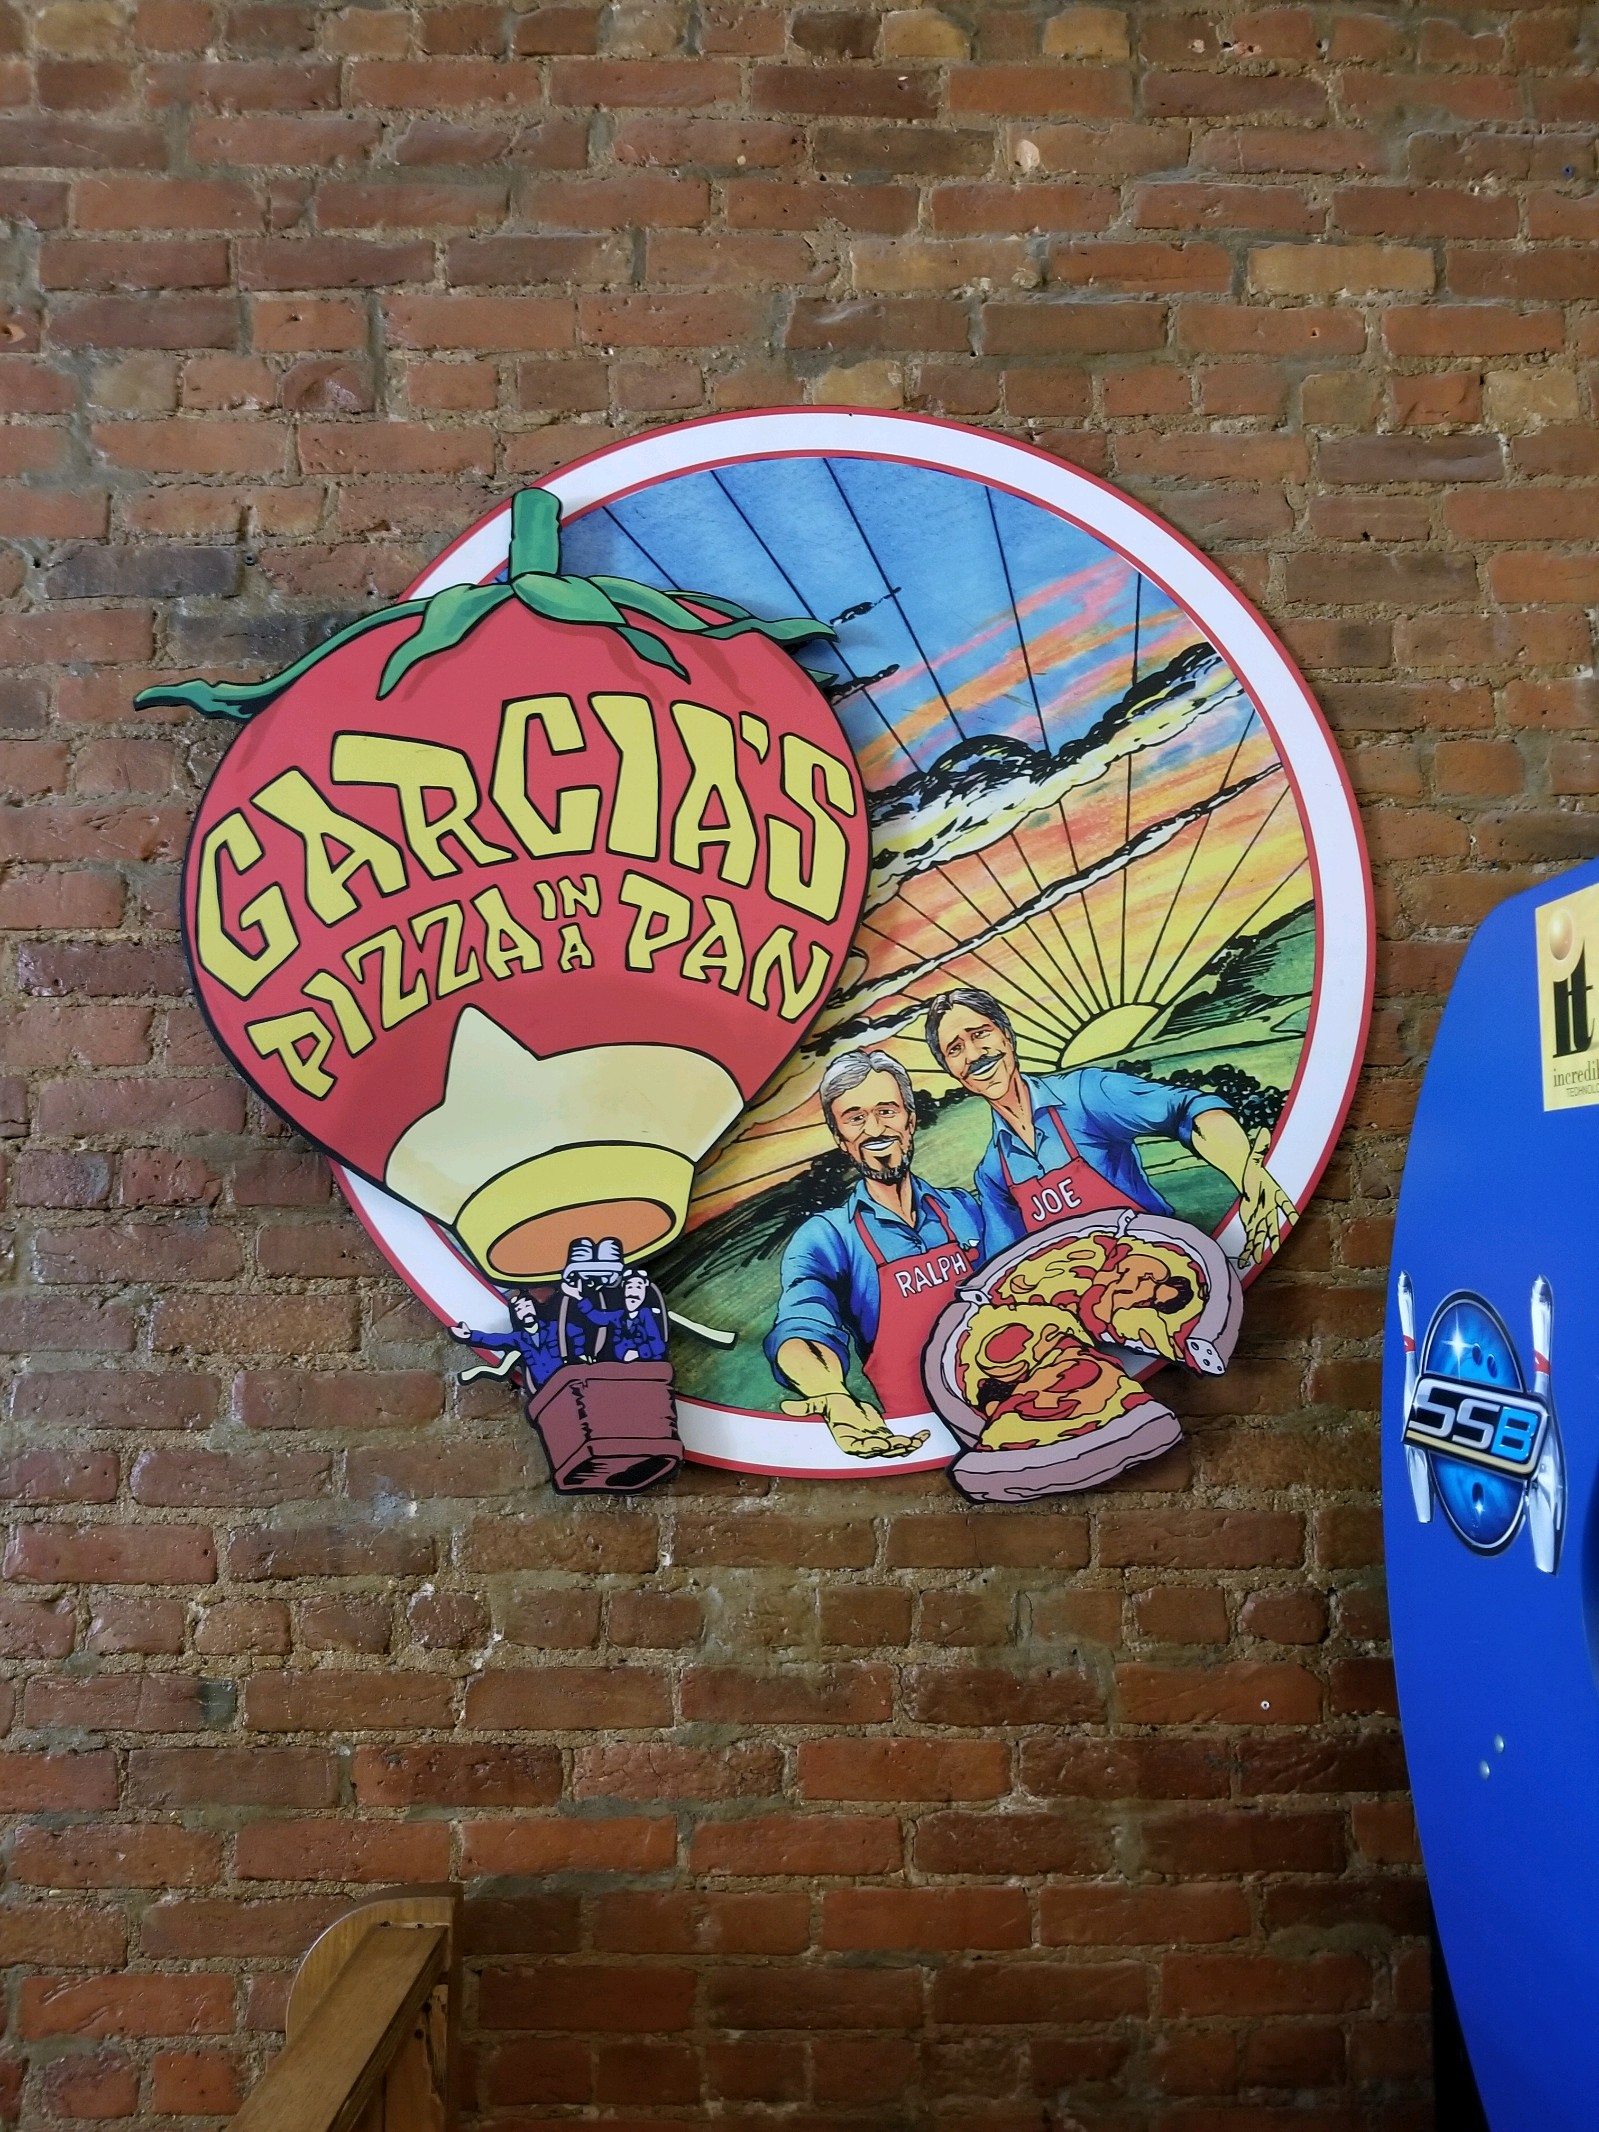 The famous logo of Garcia's Pizza in a Pan (Photo: Molly Crusen Bishop)